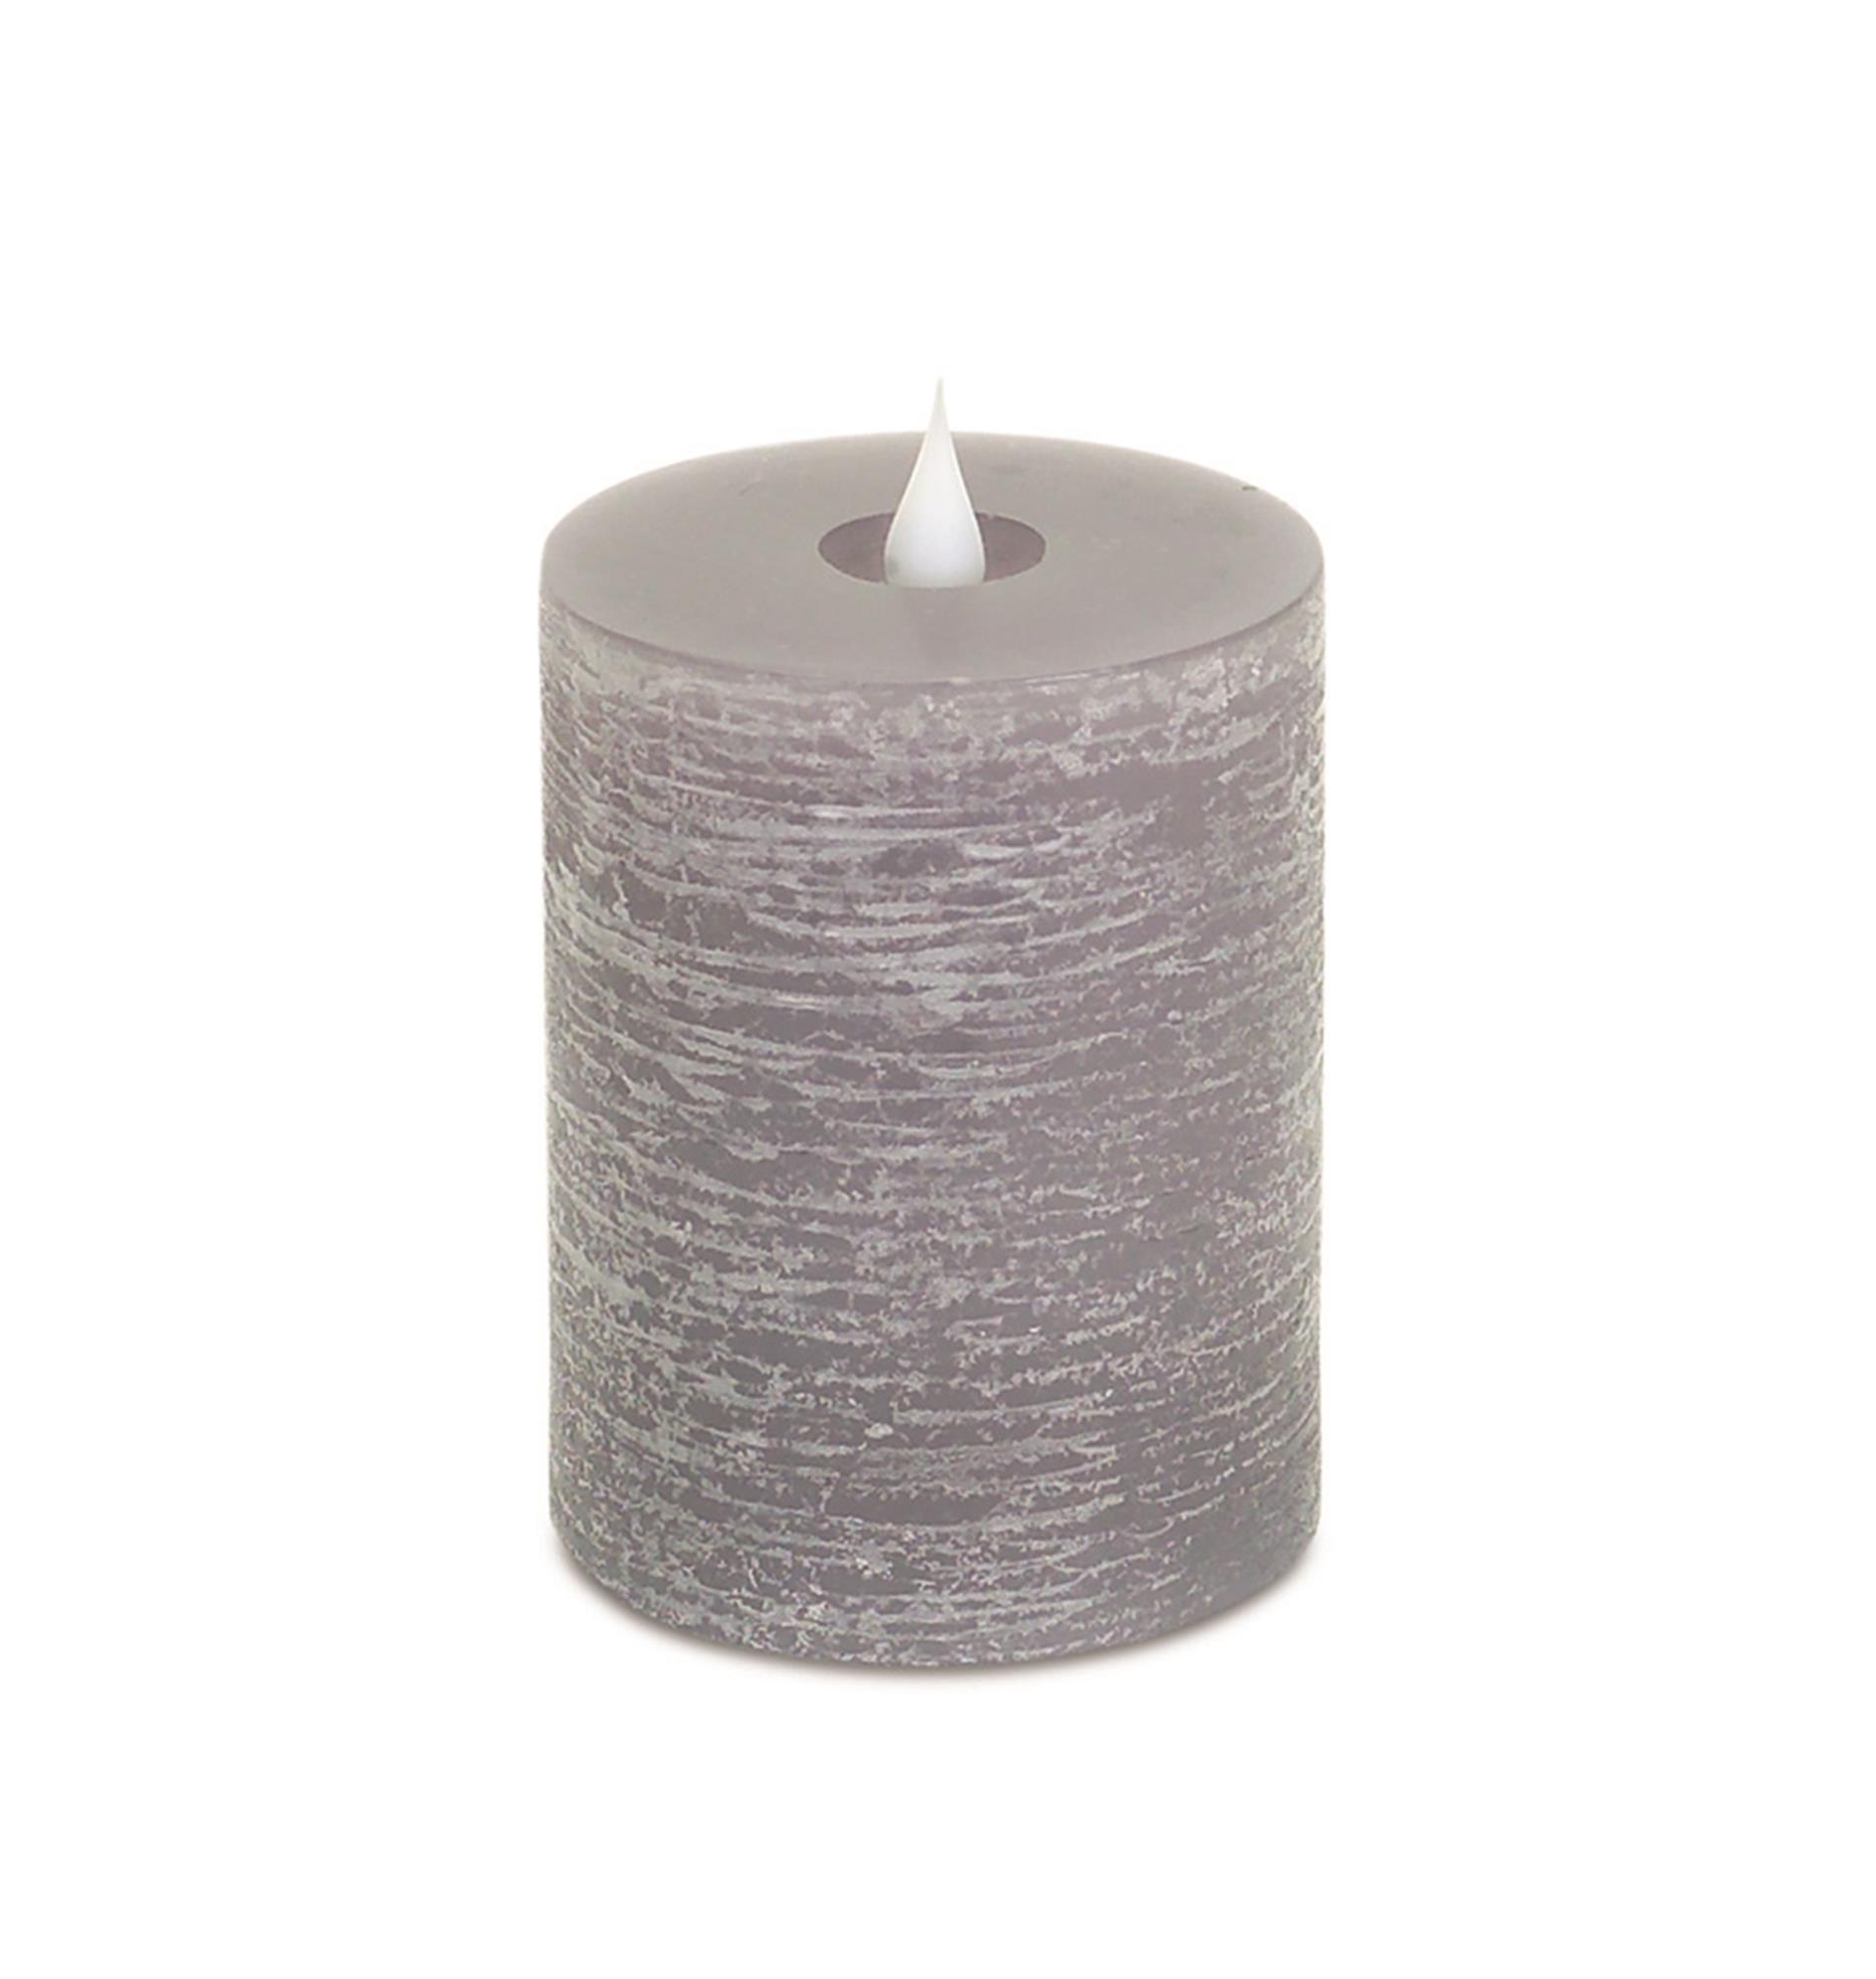 Simplux 3.5' x 5' Pillar Candle - Grey